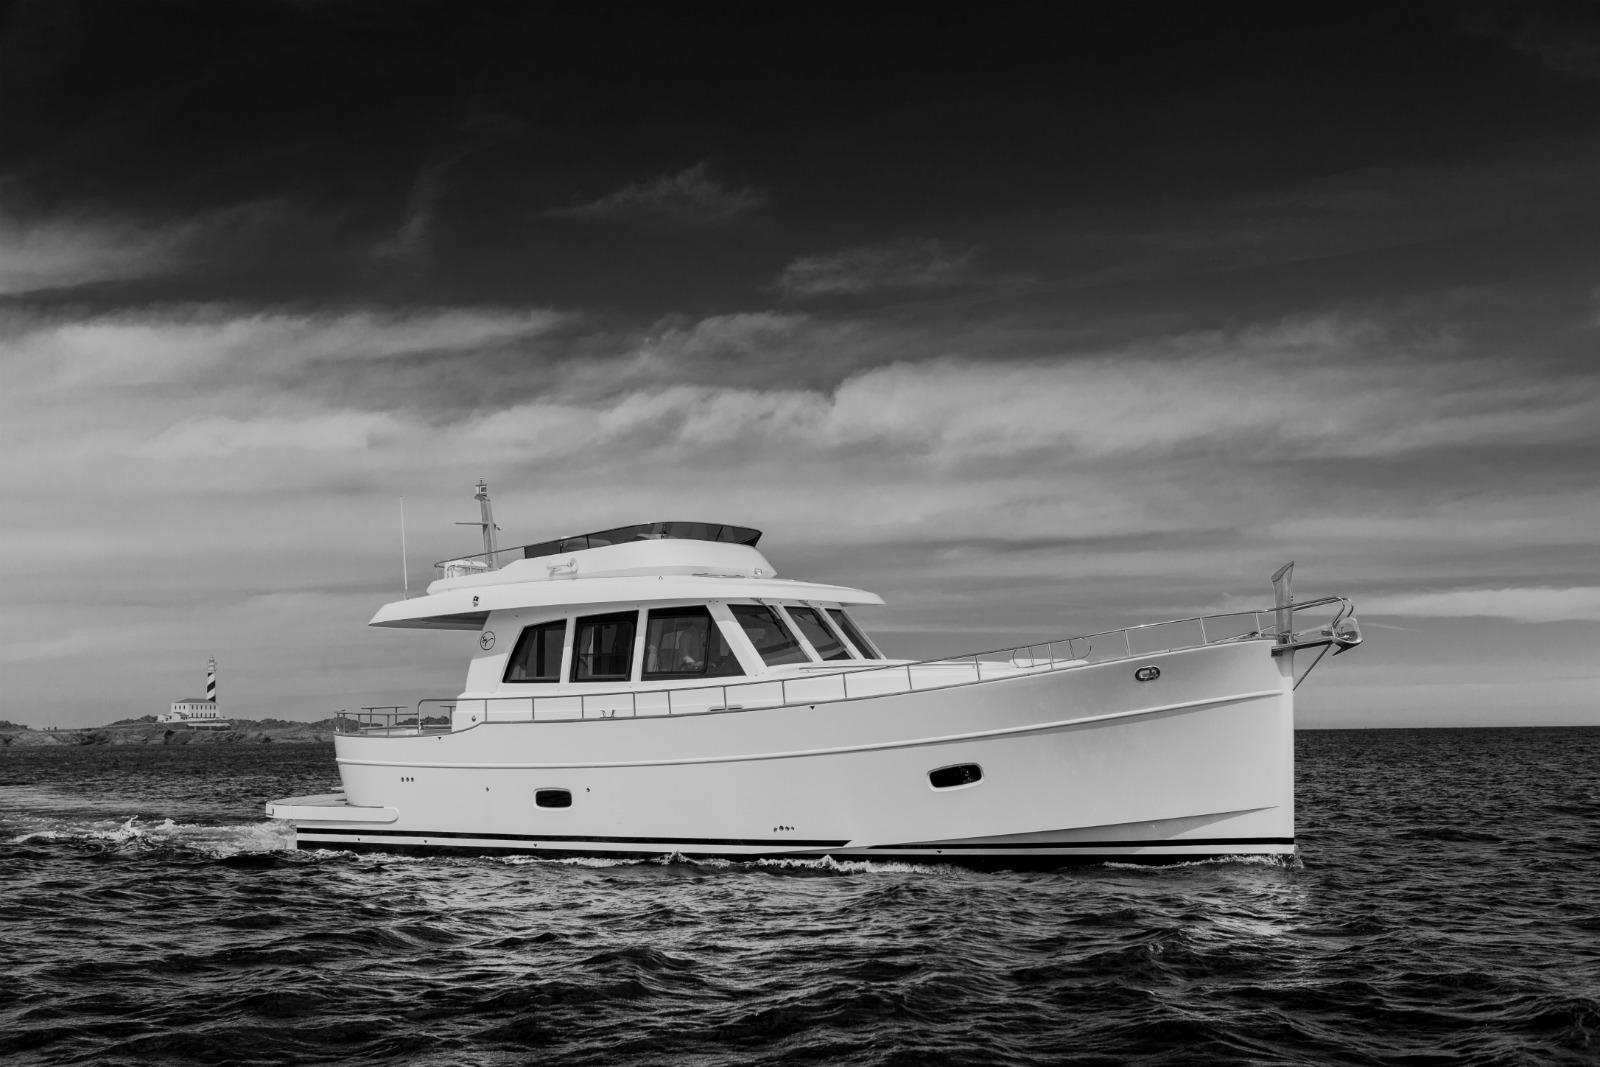 SYS Yacht Sales offers new minorca yachts for sale